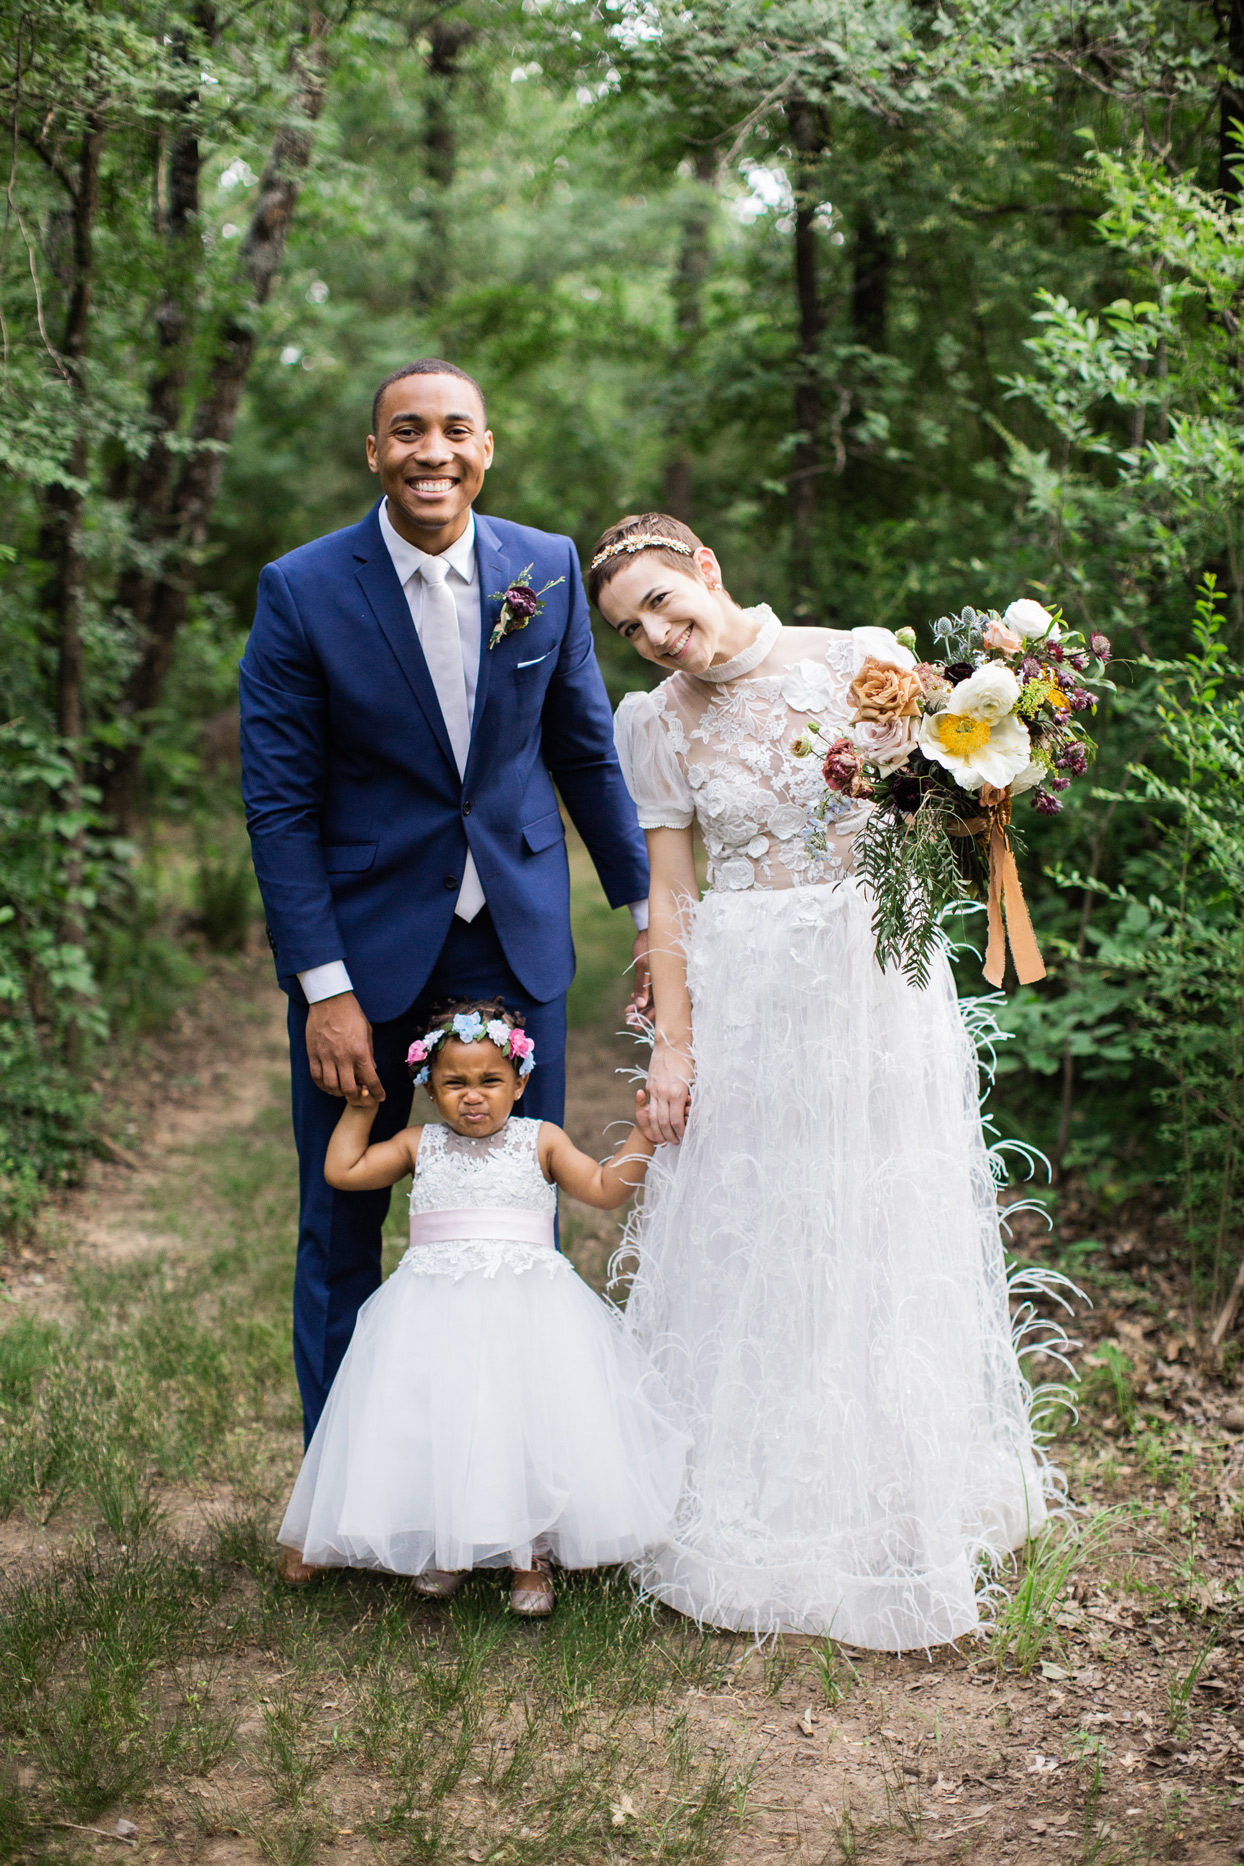 Groom, bride, and flower girl in wooded area